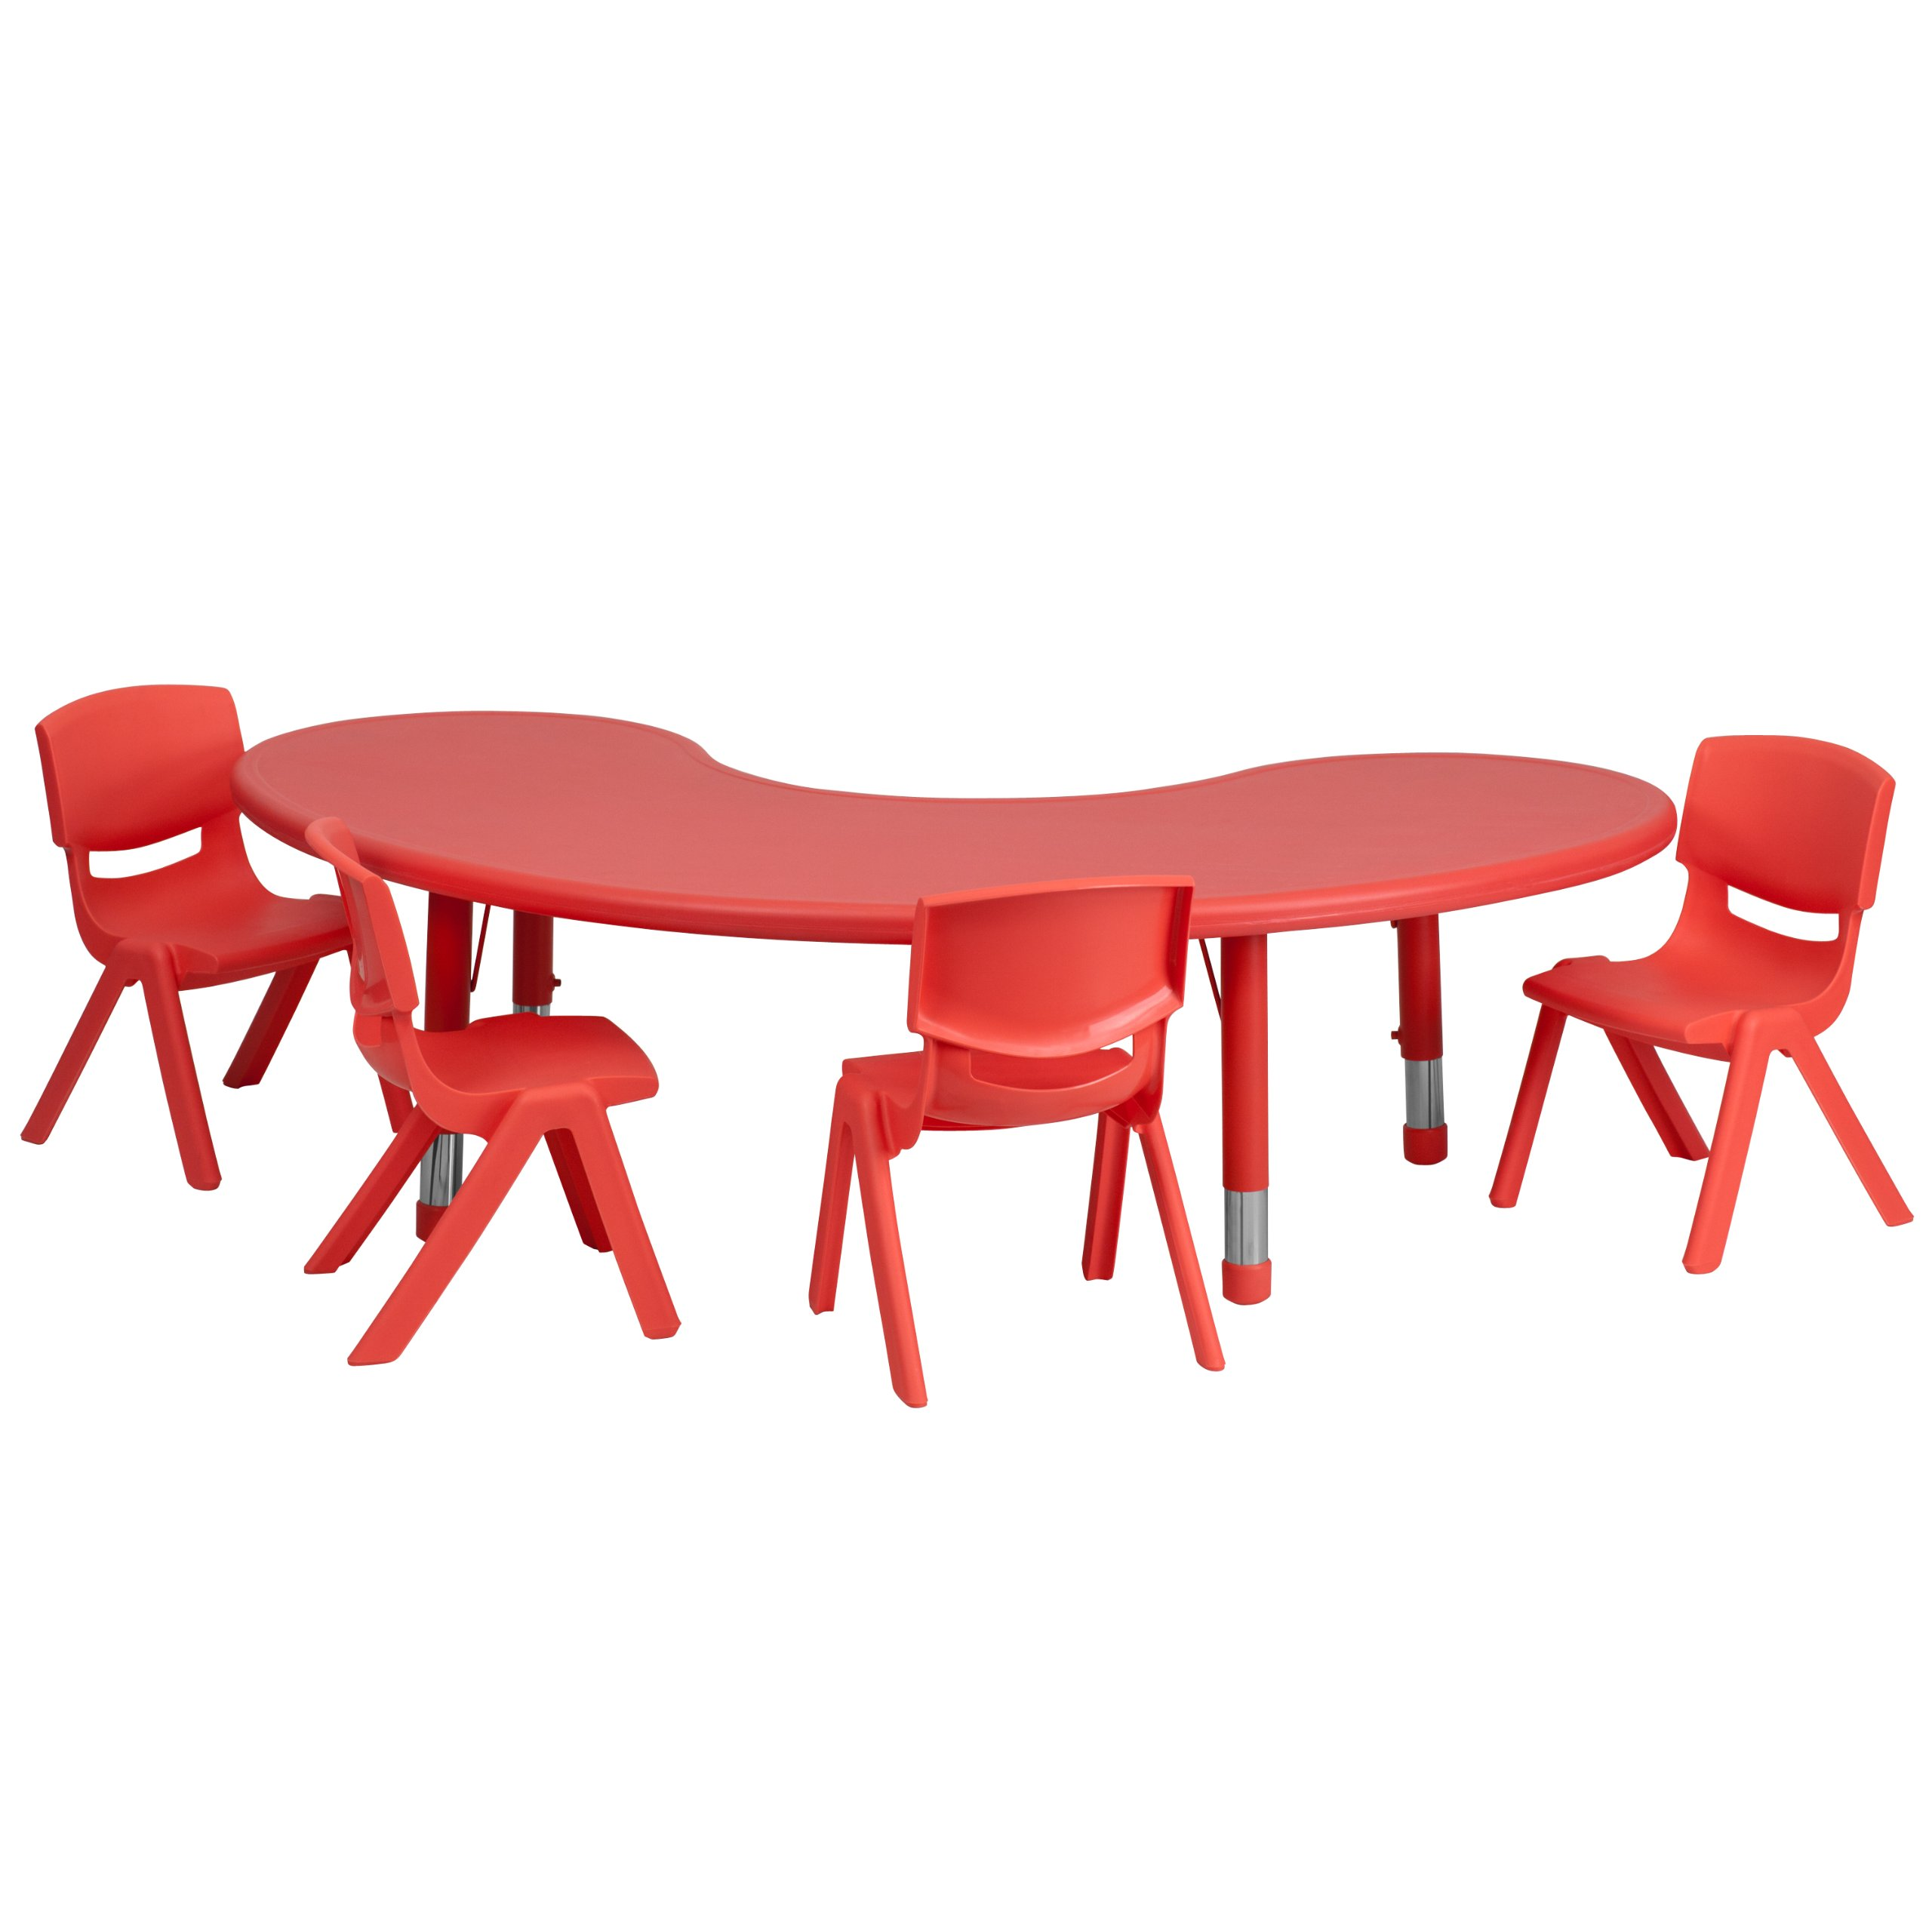 Flash Furniture 35''W x 65''L Half-Moon Red Plastic Height Adjustable Activity Table Set with 4 Chairs by Flash Furniture